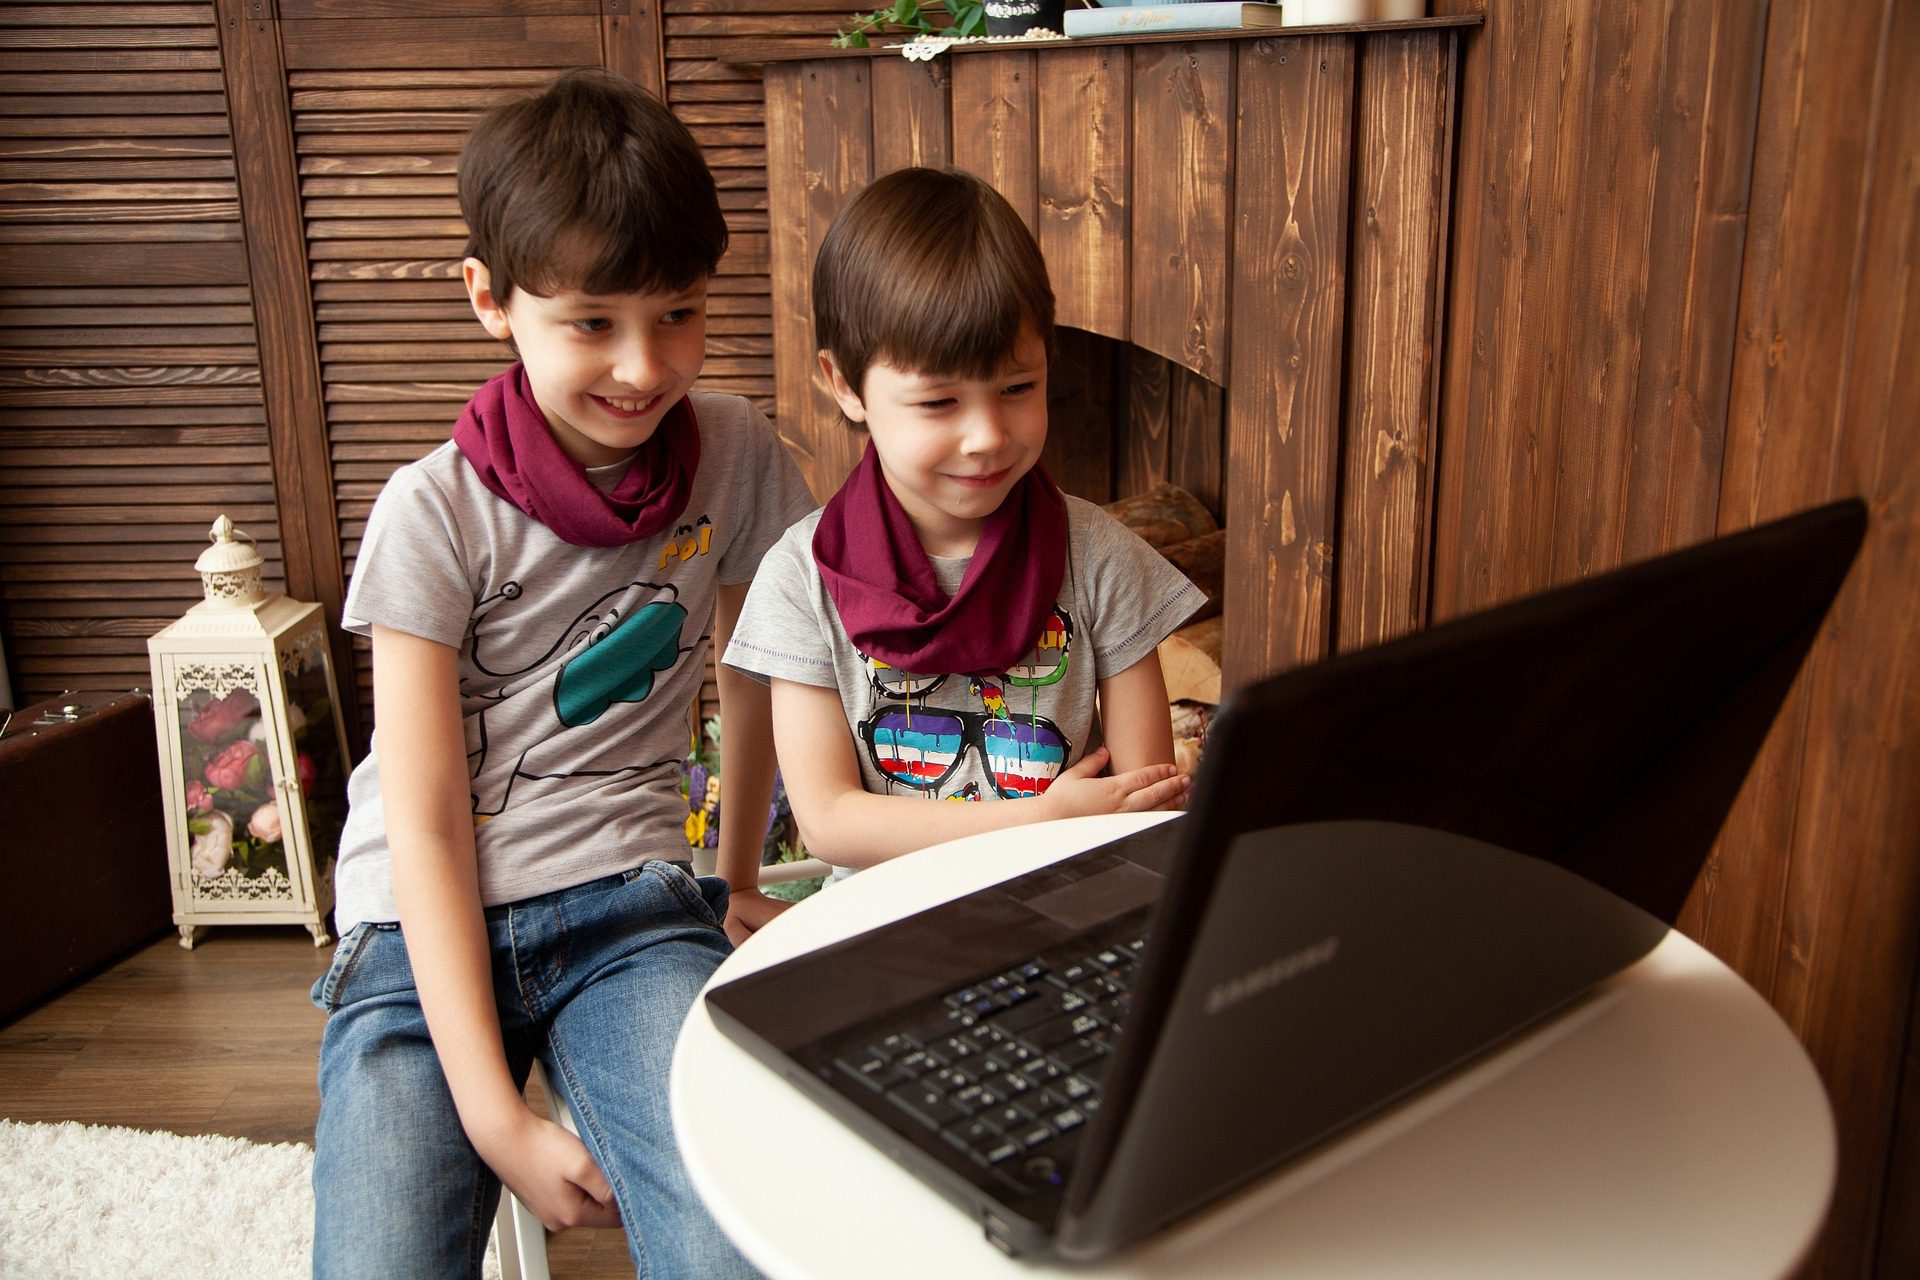 4 Ways to Keep Your Kids Safe Online